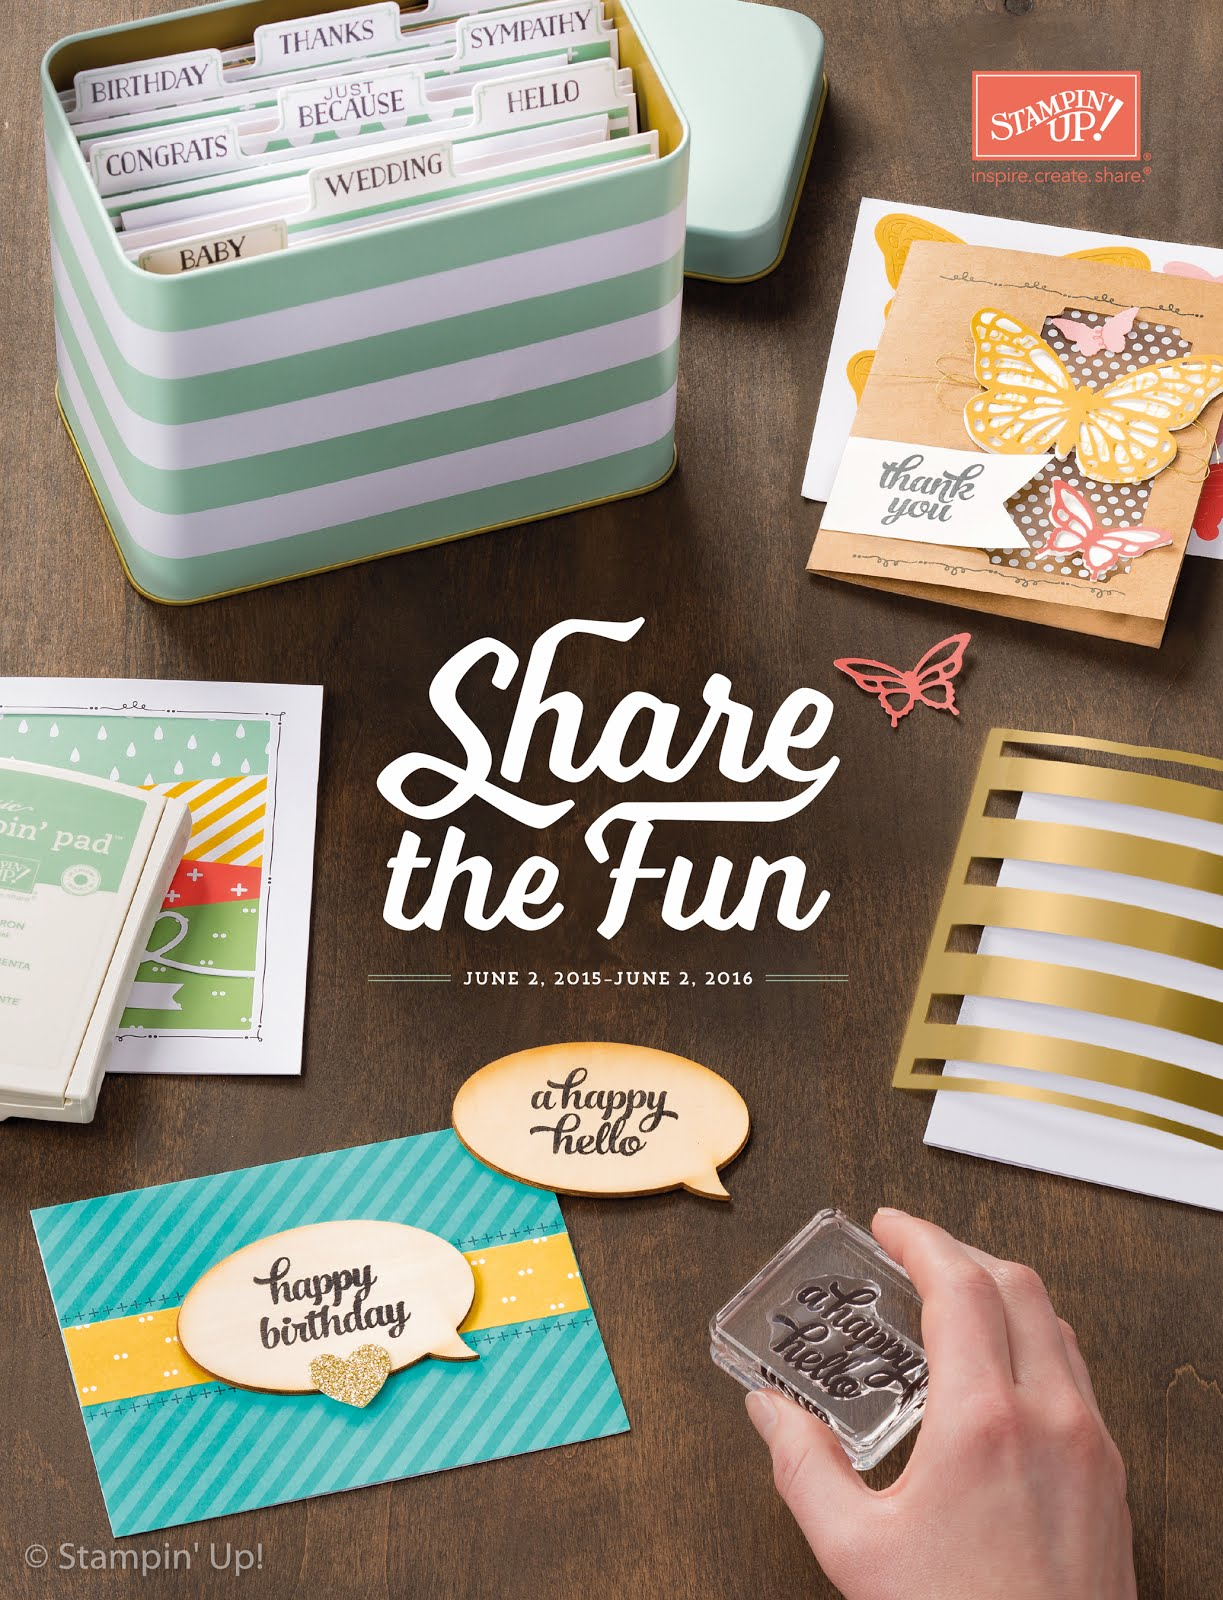 Stampin' Up! Catalogus 2015-2016